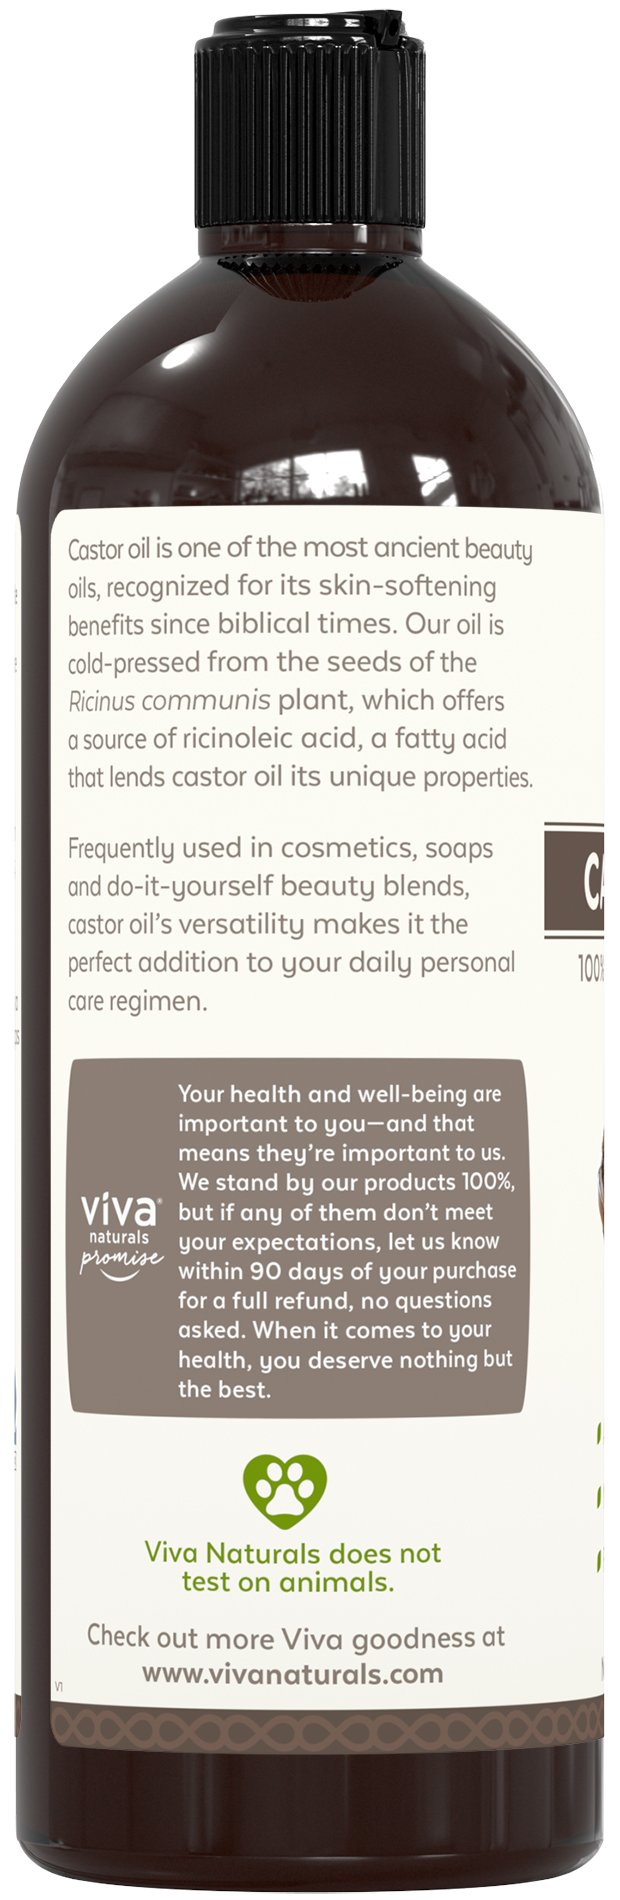 Viva Naturals Certified Organic Castor Oil (16 oz) – 100% Pure and Hexane Free + BONUS Mascara Kit Included, Perfect for Hair Care, Eyelashes and Brows by Viva Naturals (Image #4)